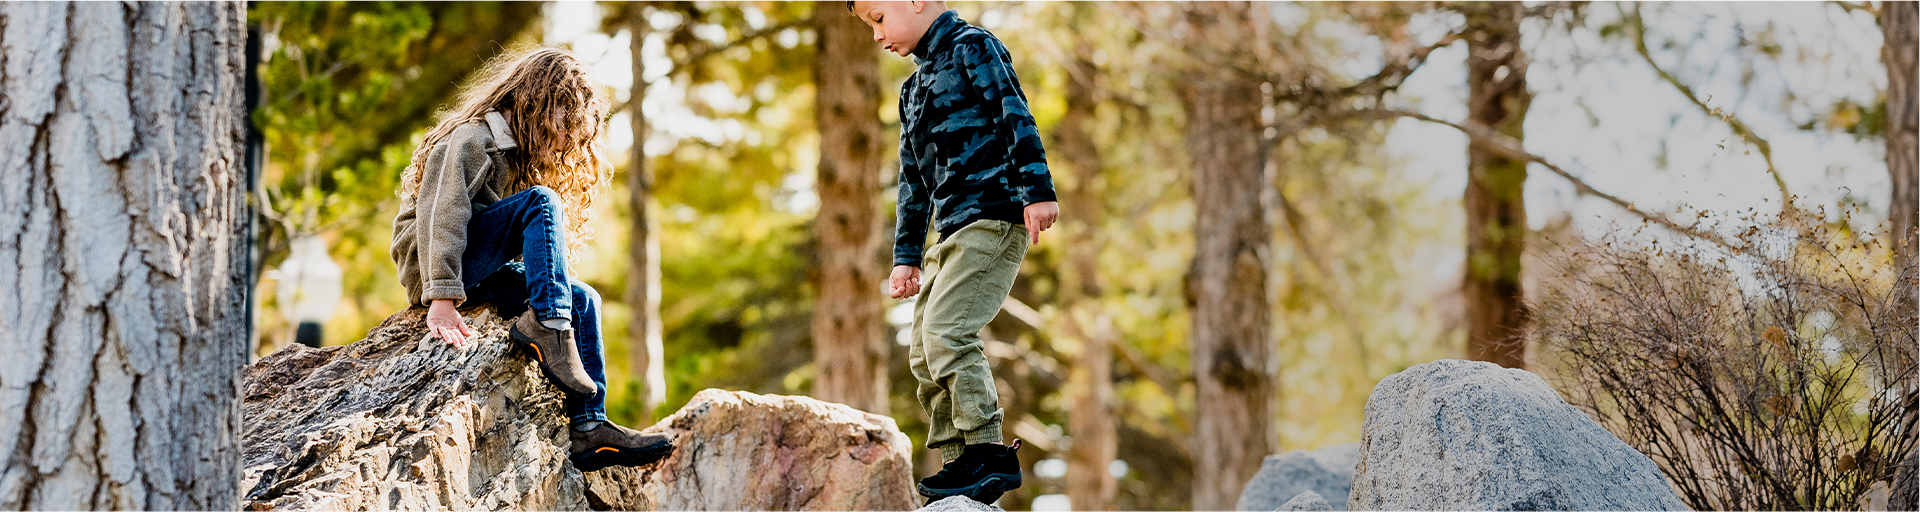 Kids playing in the woods while wearing Merrell shoes.